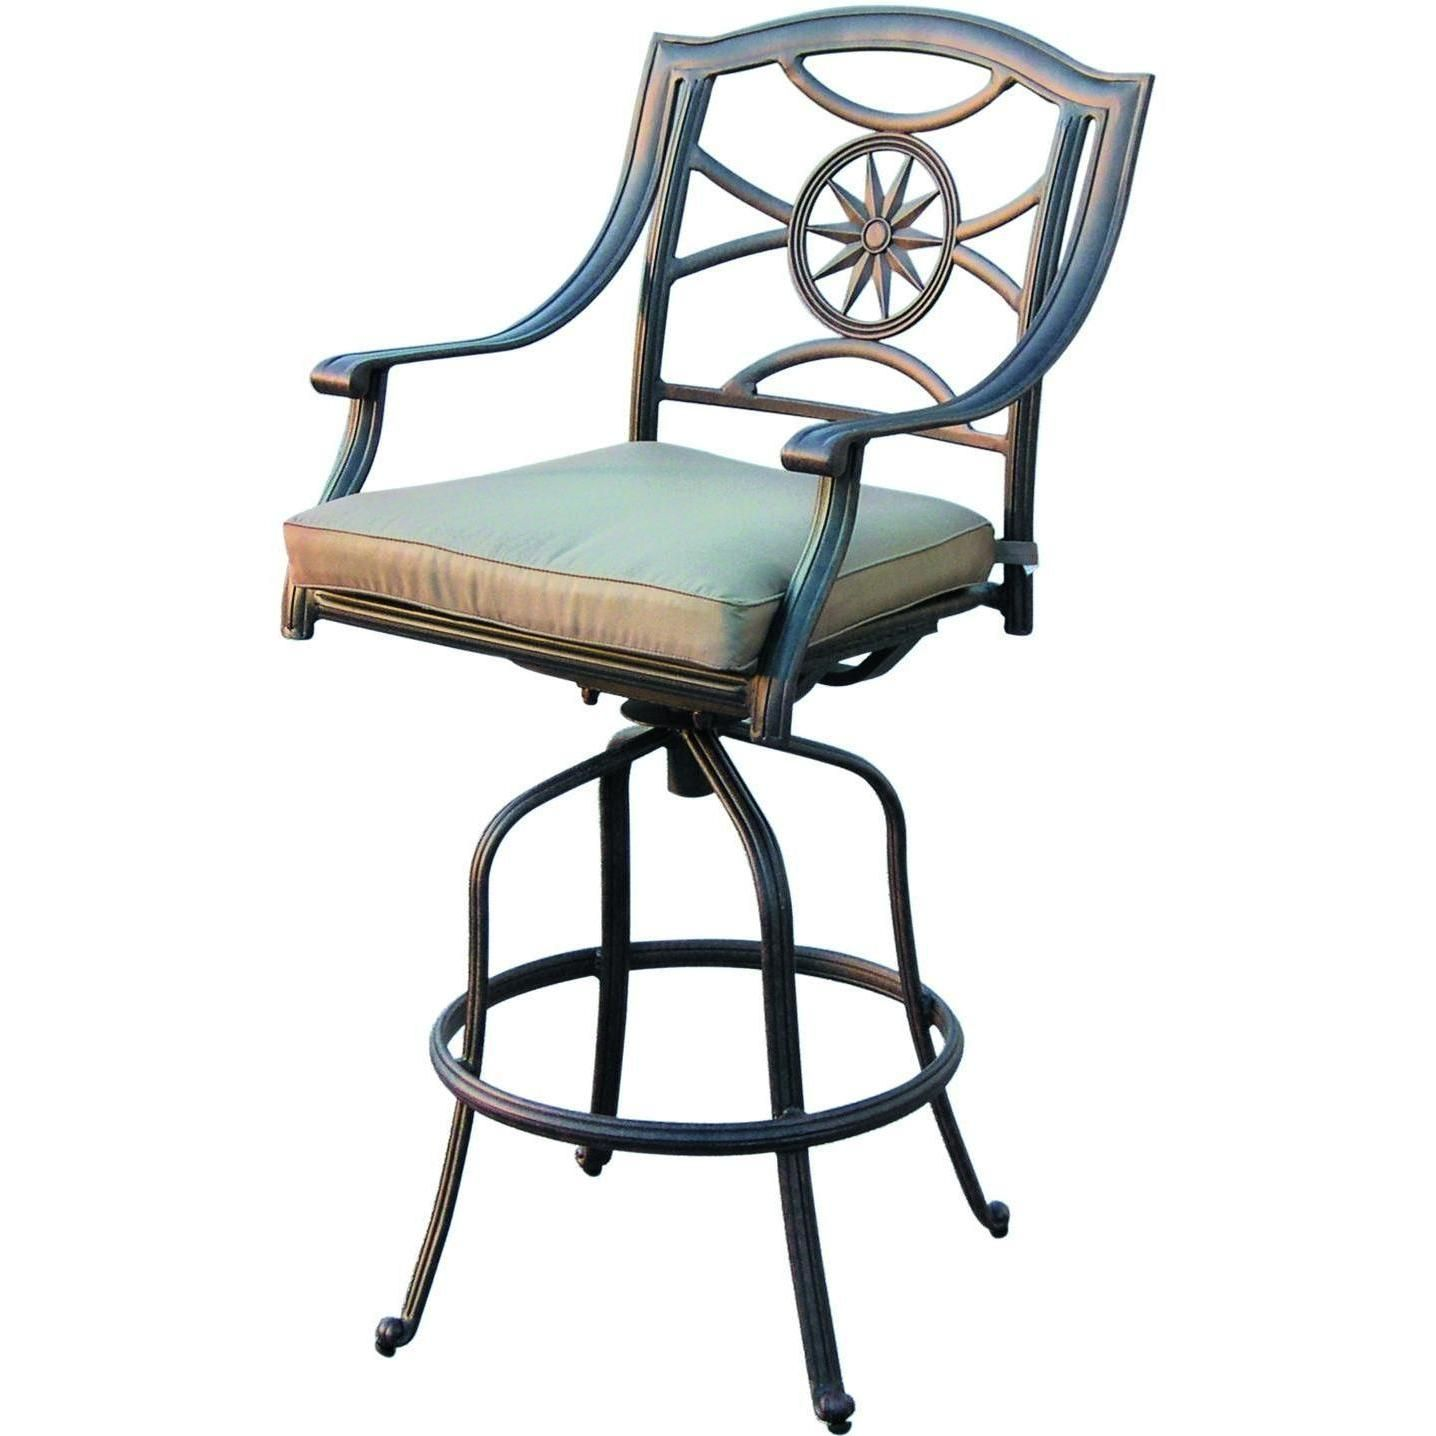 Awe Inspiring Darlee Ten Star Cast Aluminum Patio Swivel Bar Stool In 2019 Squirreltailoven Fun Painted Chair Ideas Images Squirreltailovenorg